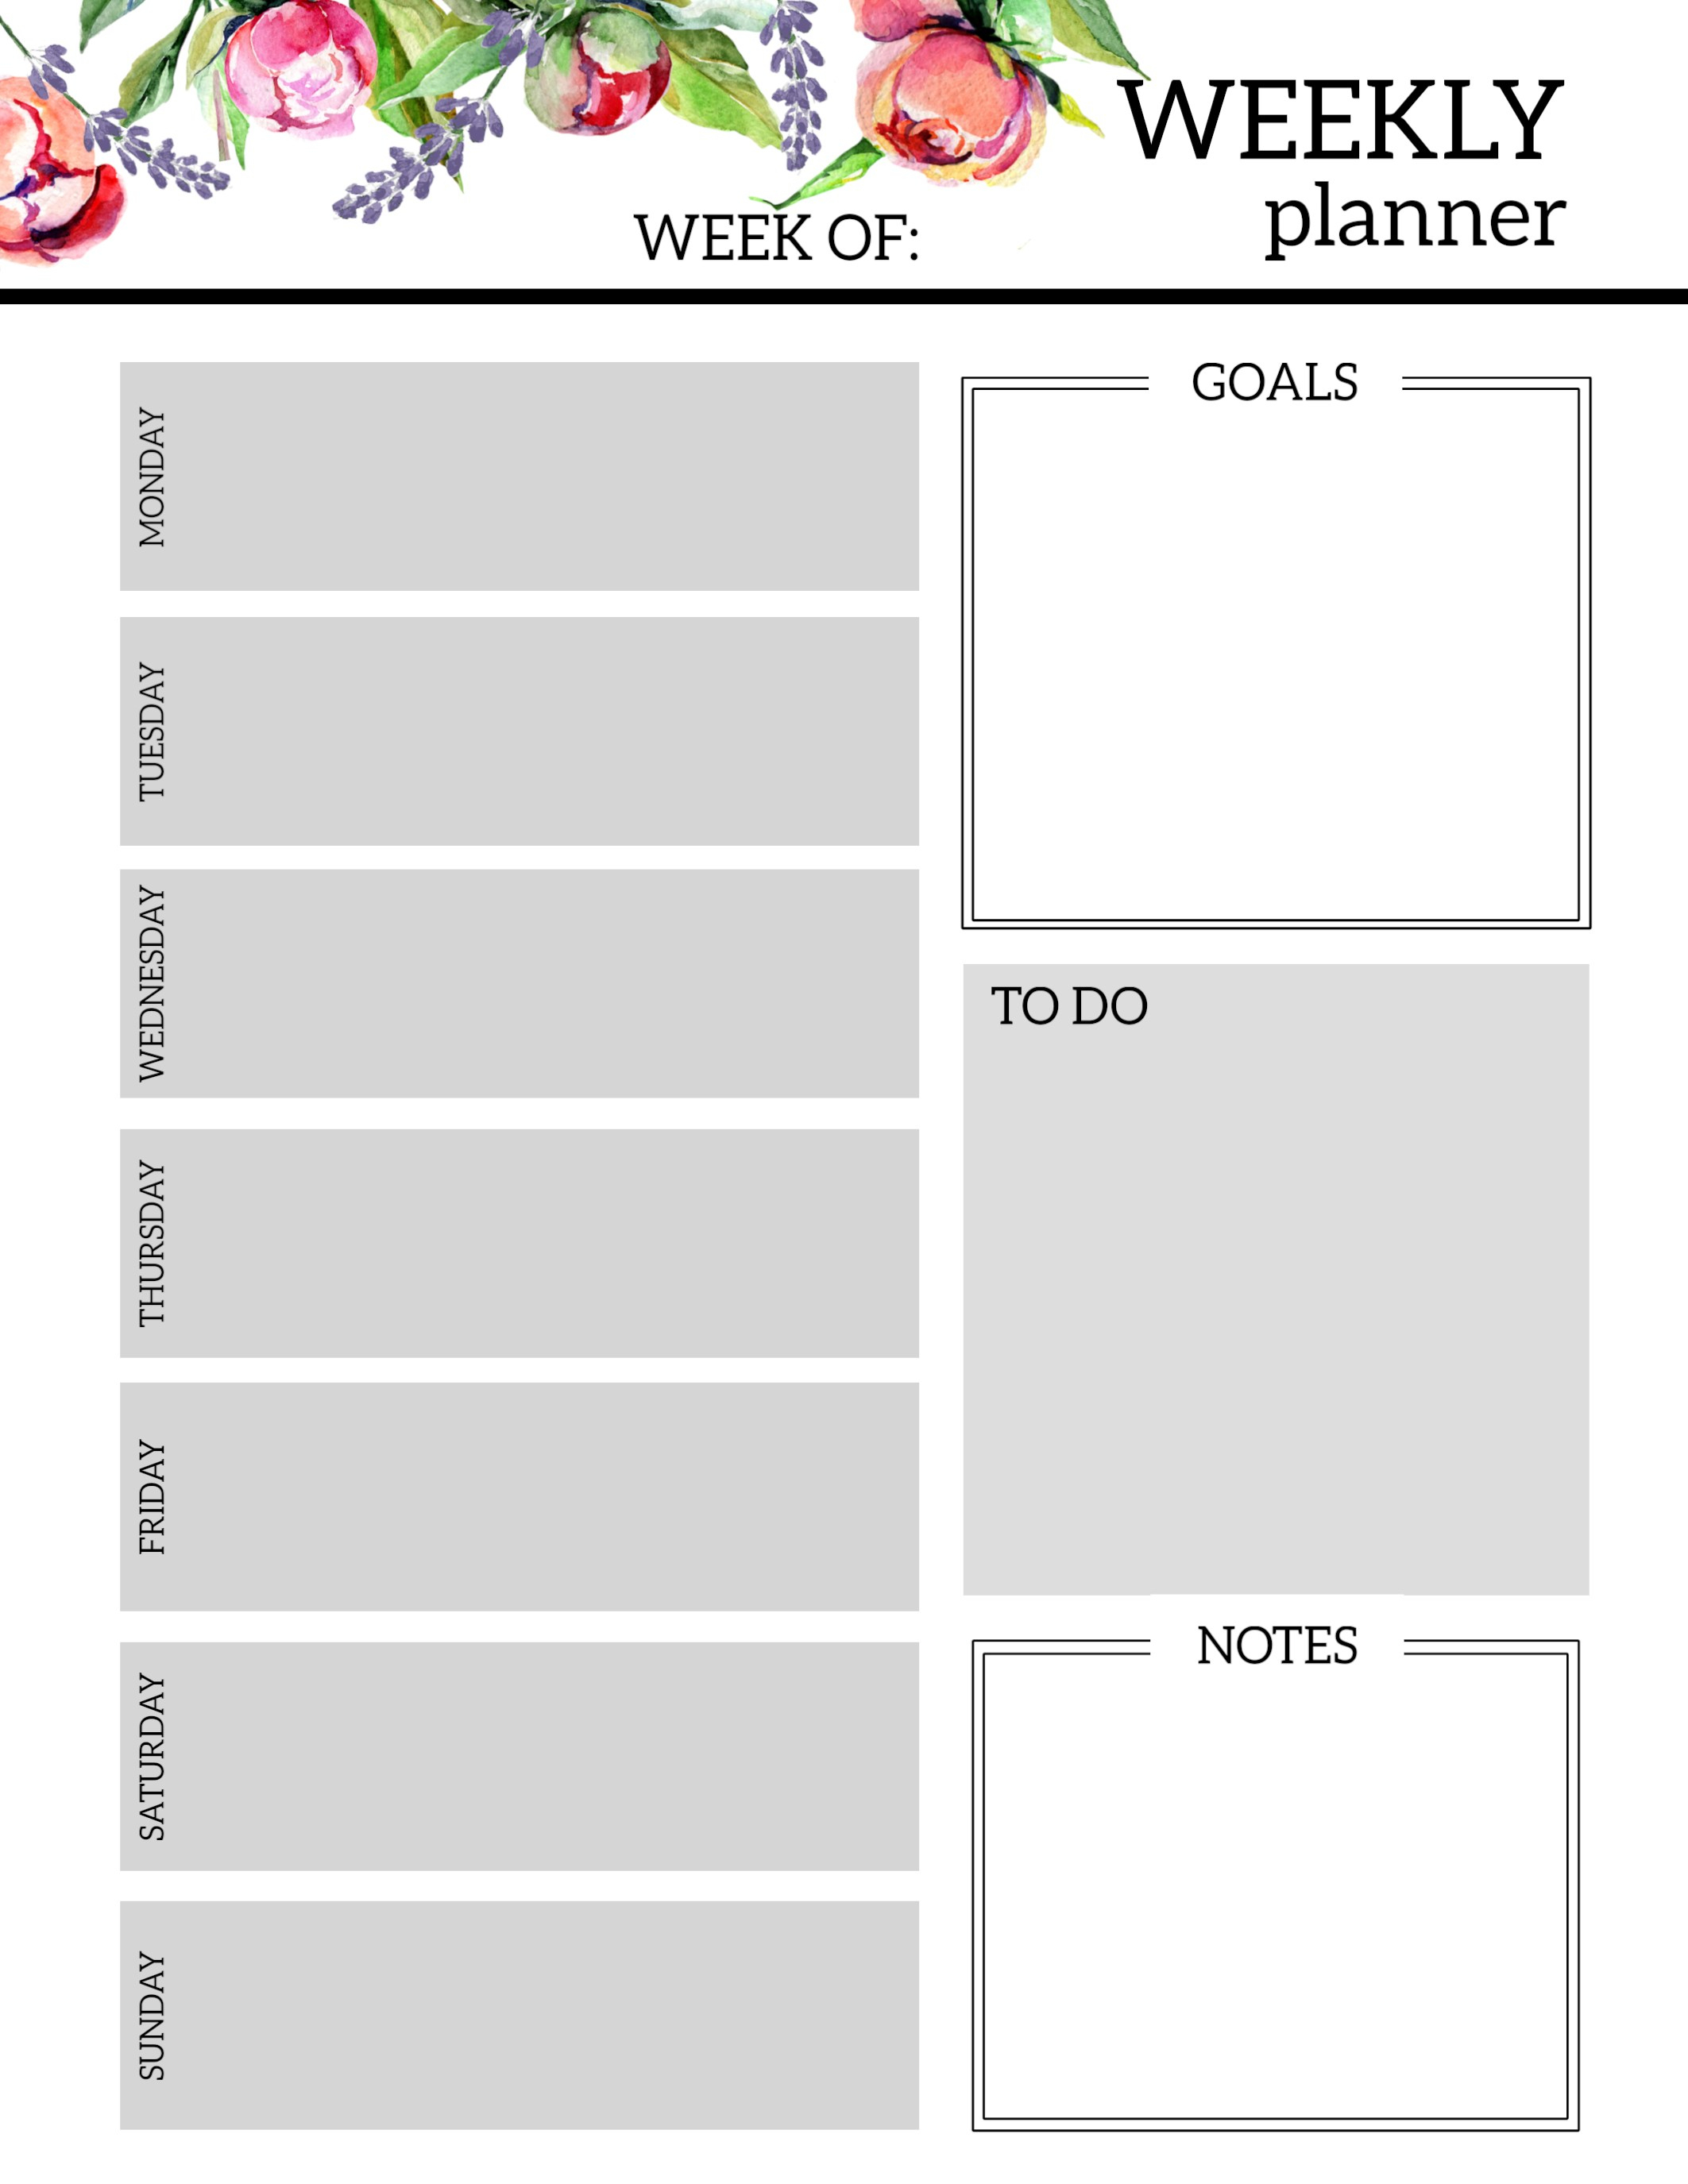 Floral Free Printable Weekly Planner Template - Paper Trail Design pertaining to Weekly Schedule Template Free To Print